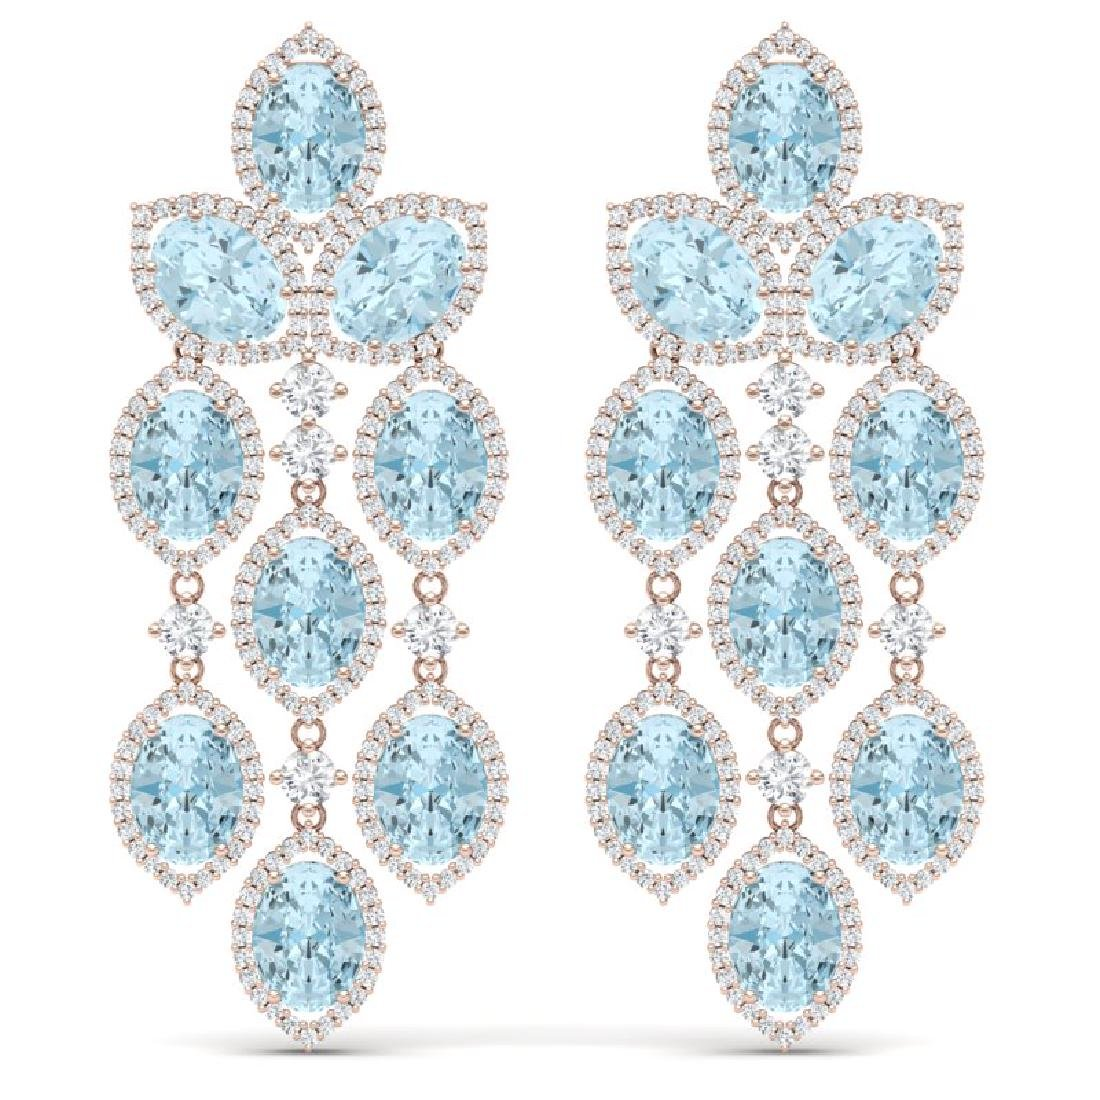 23.76 CTW Royalty Sky Topaz & VS Diamond Earrings 18K